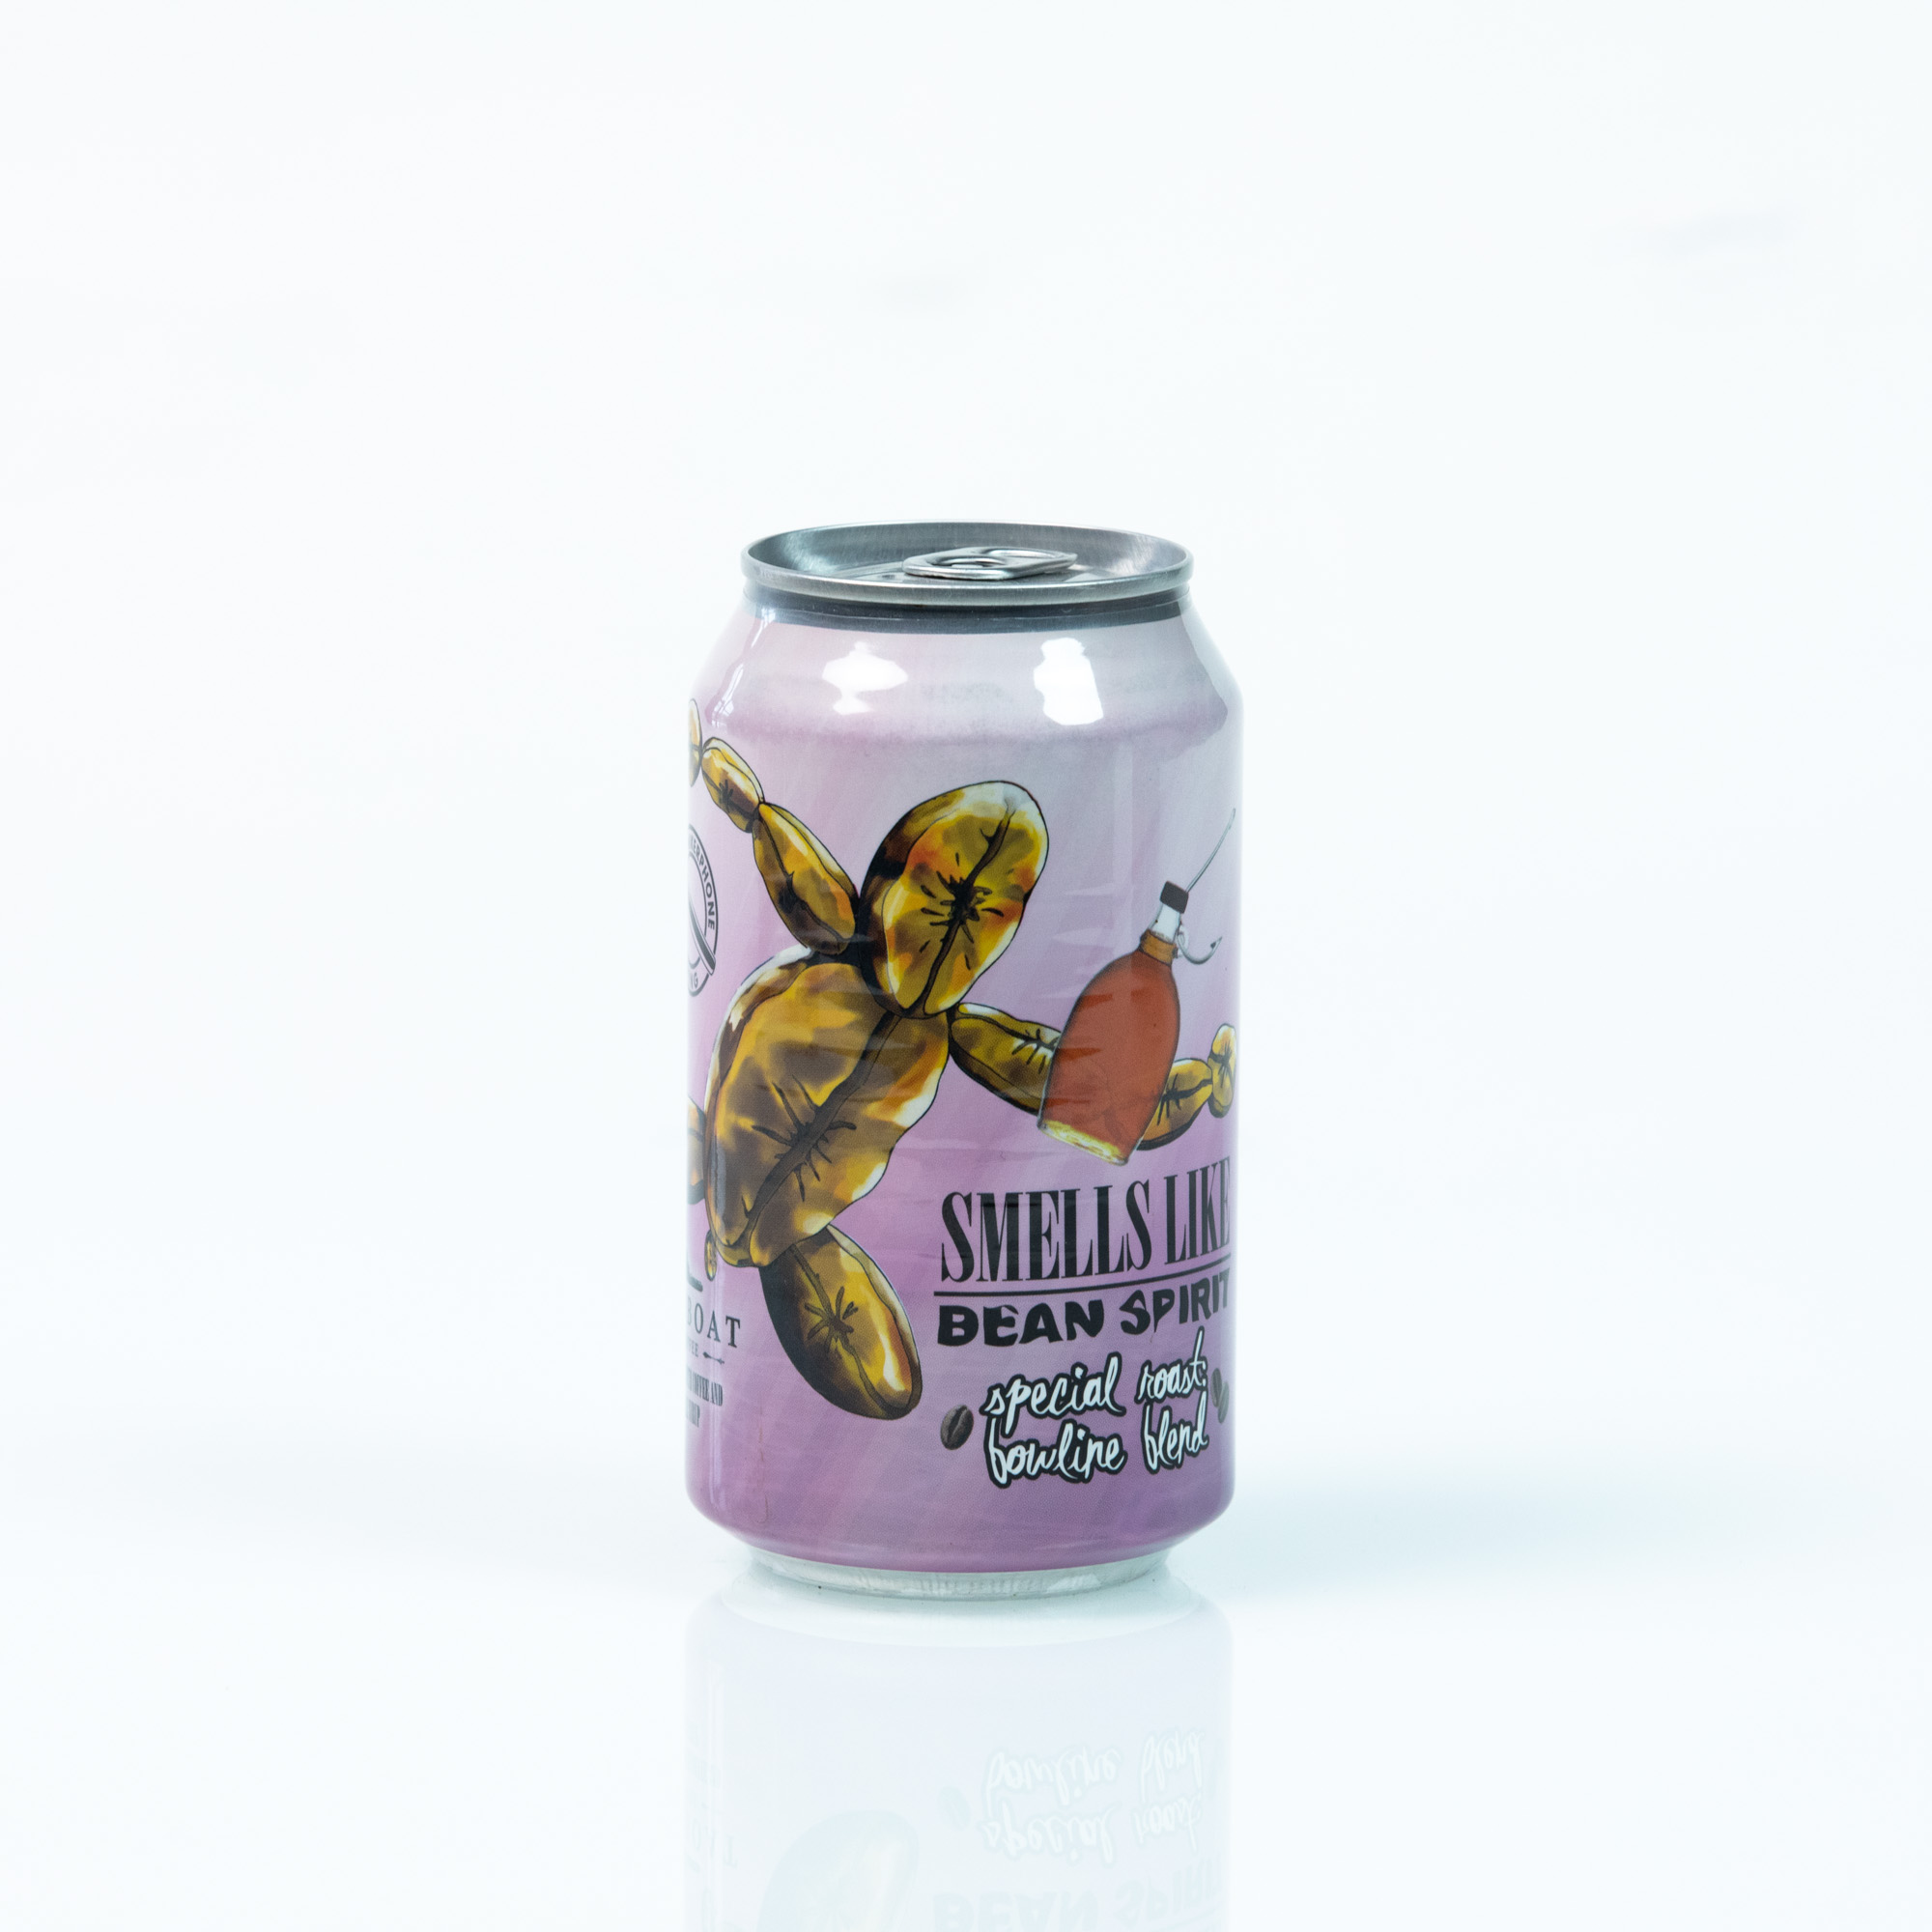 Smells Like Bean Spirit Imperial Stout with Maple Syrup and Coffee